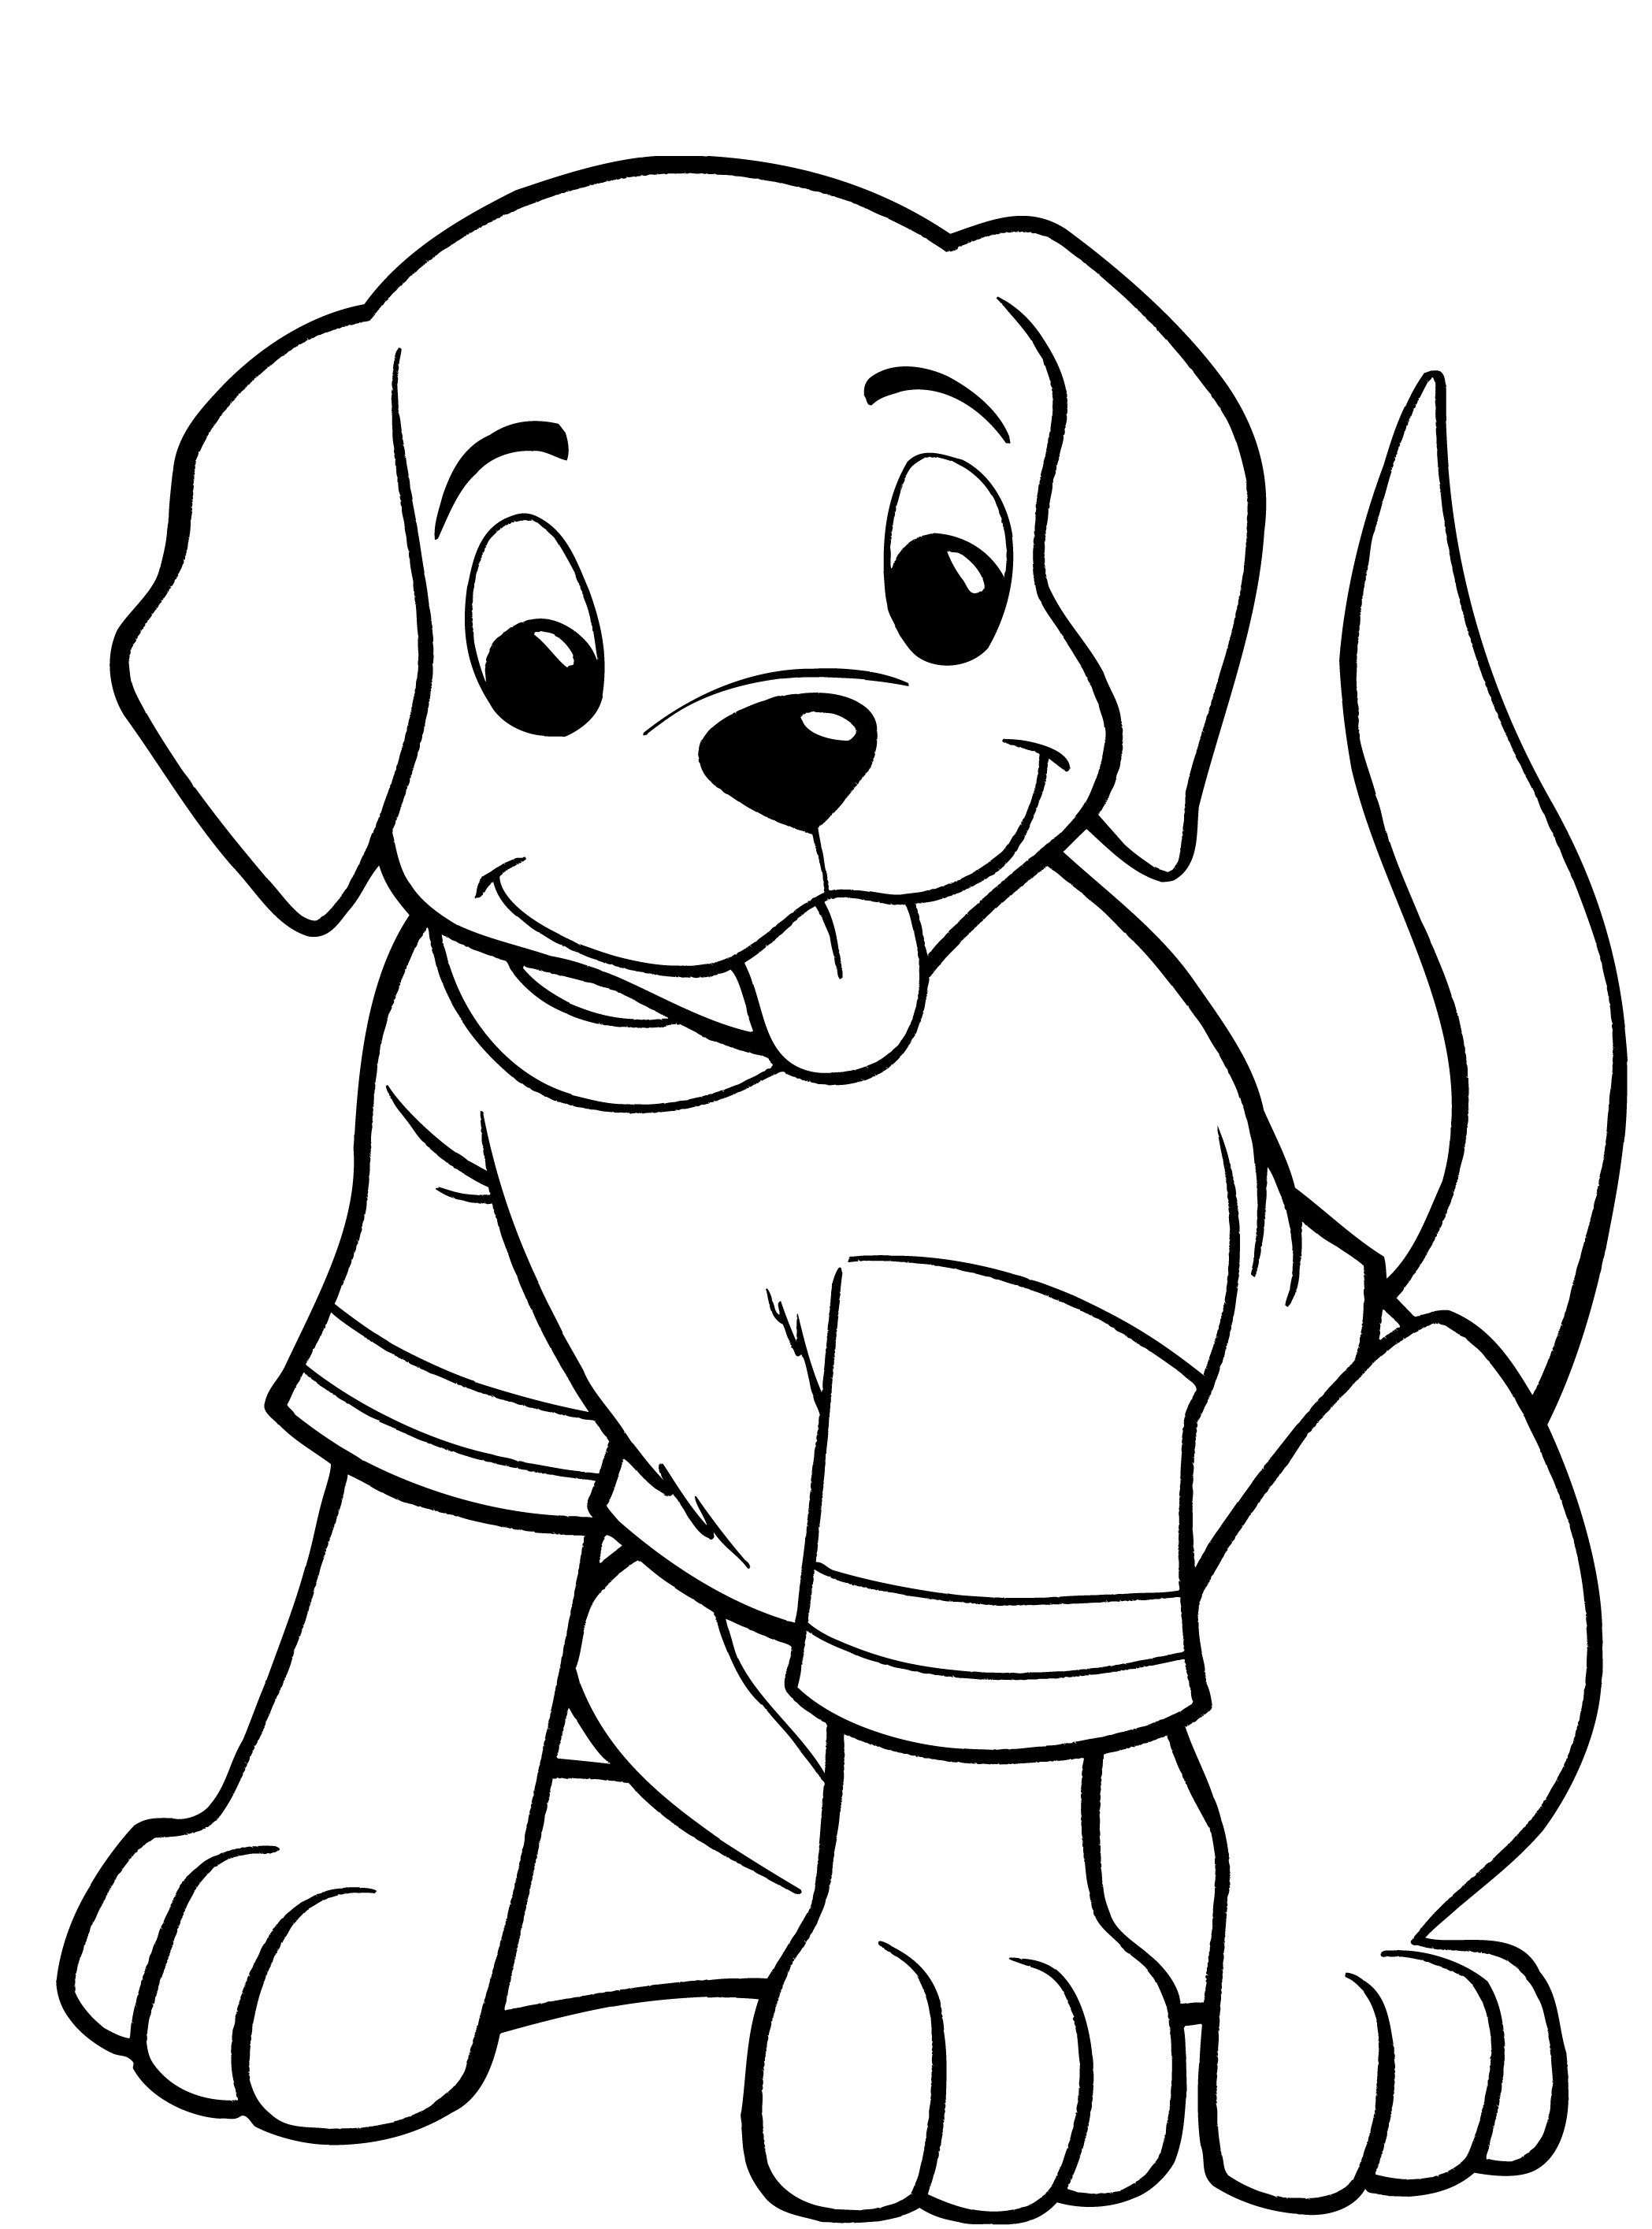 little dog coloring pages coloring pages with cute puppies coloring home dog pages coloring little